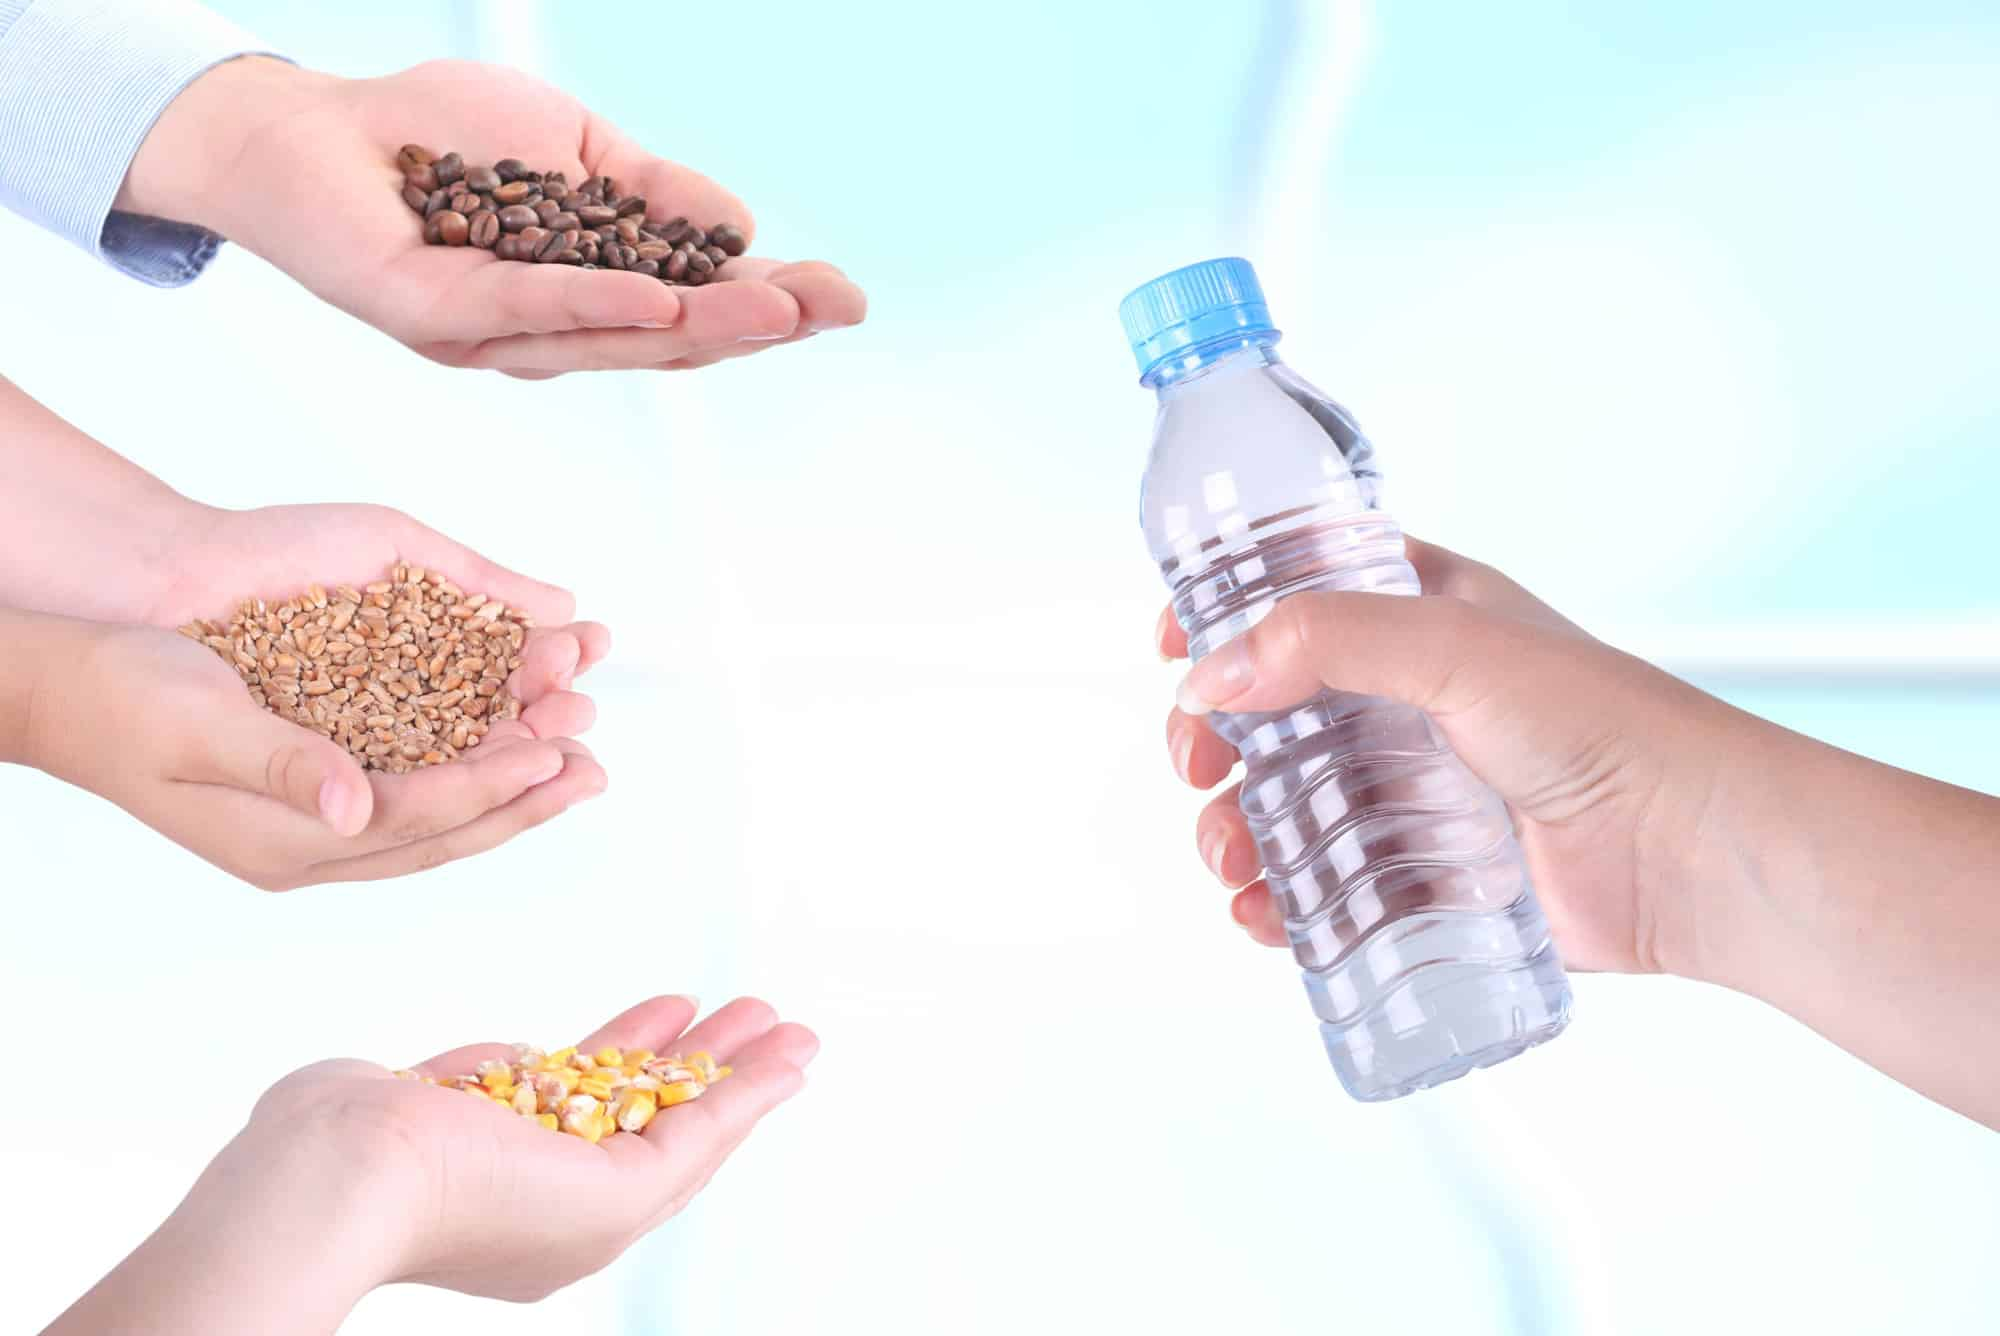 People's hands offering to barter corn, grains and coffee for bottled water in a barter network.